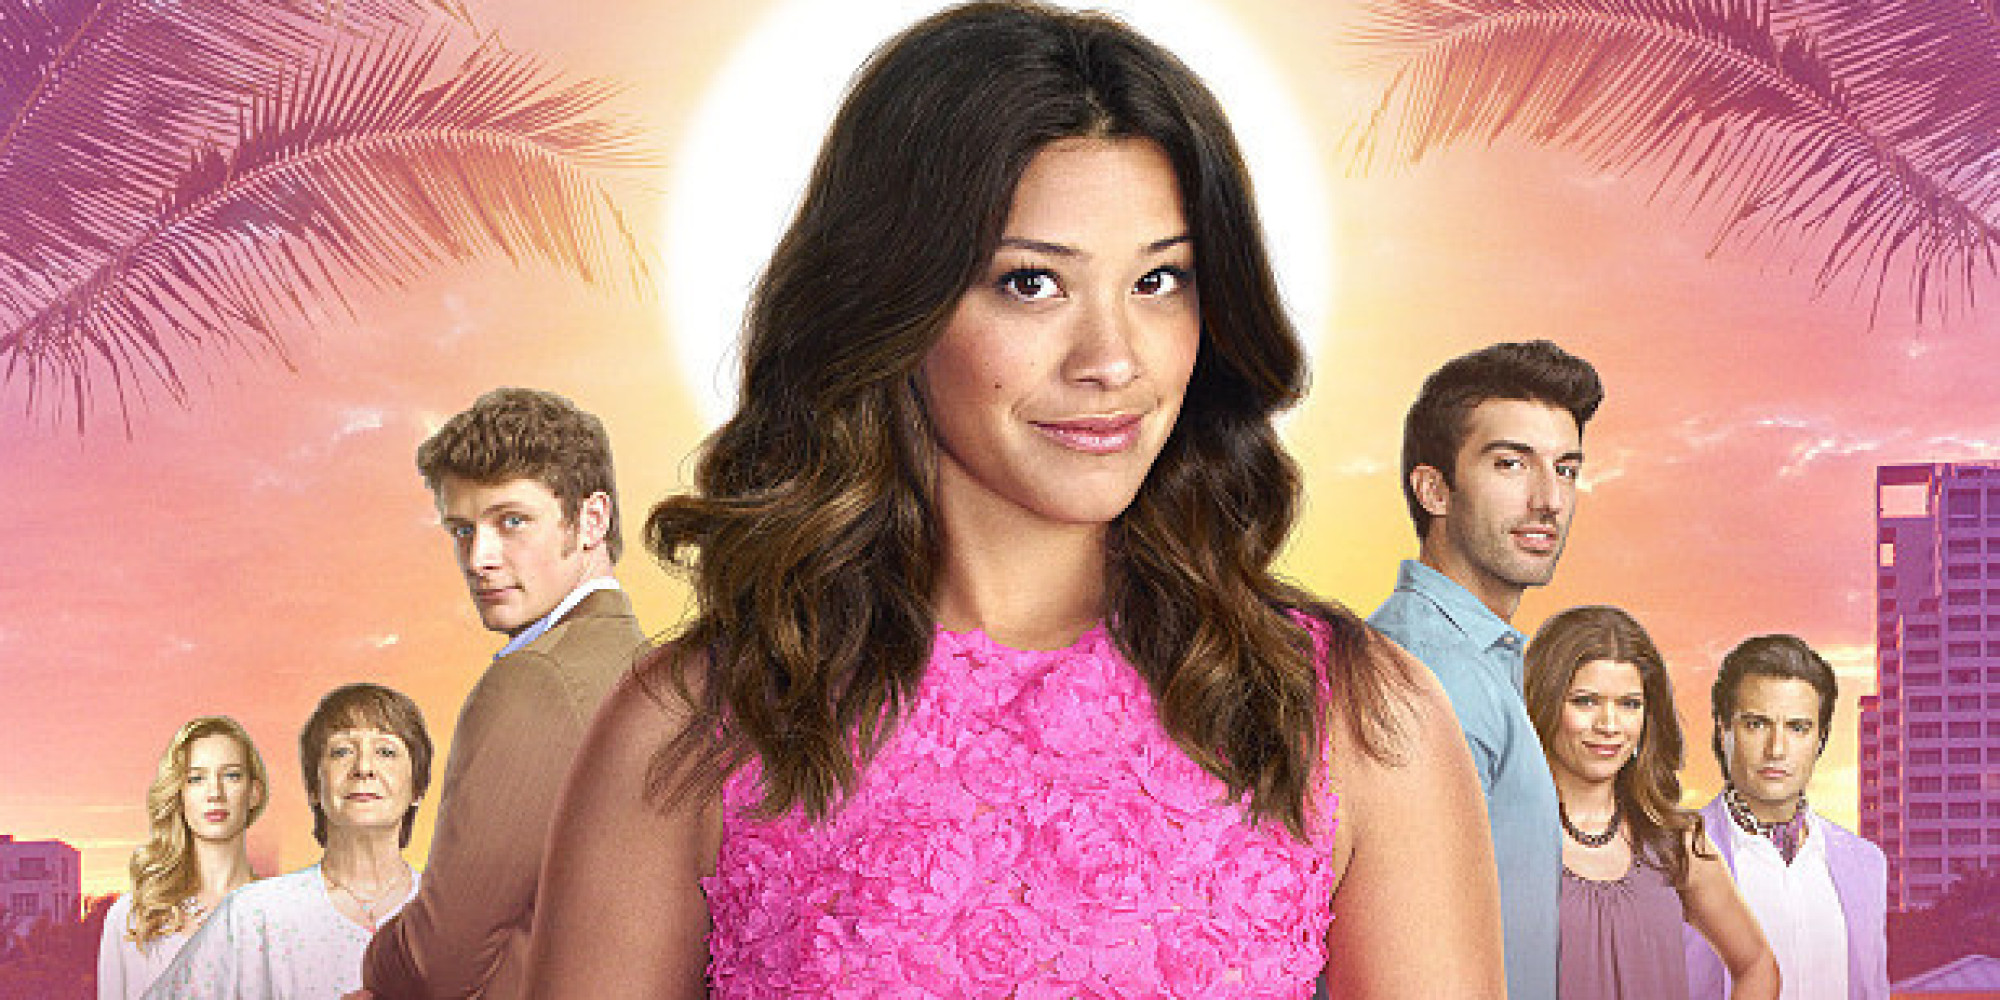 sherlock Jane The Virgin -- Image Number: JAV1_Cast.jpg -- Pictured (L-R): Yael Grobglas as Petra, Ivonne Coll as Alba, Brett Dier as Michael, Gina Rodriguez as Jane, Justin Baldoni as Rafael, Andrea Navedo as Xo and Jaime Camil as Rogelio -- © 2015 The CW Network, LLC. All rights reserved.